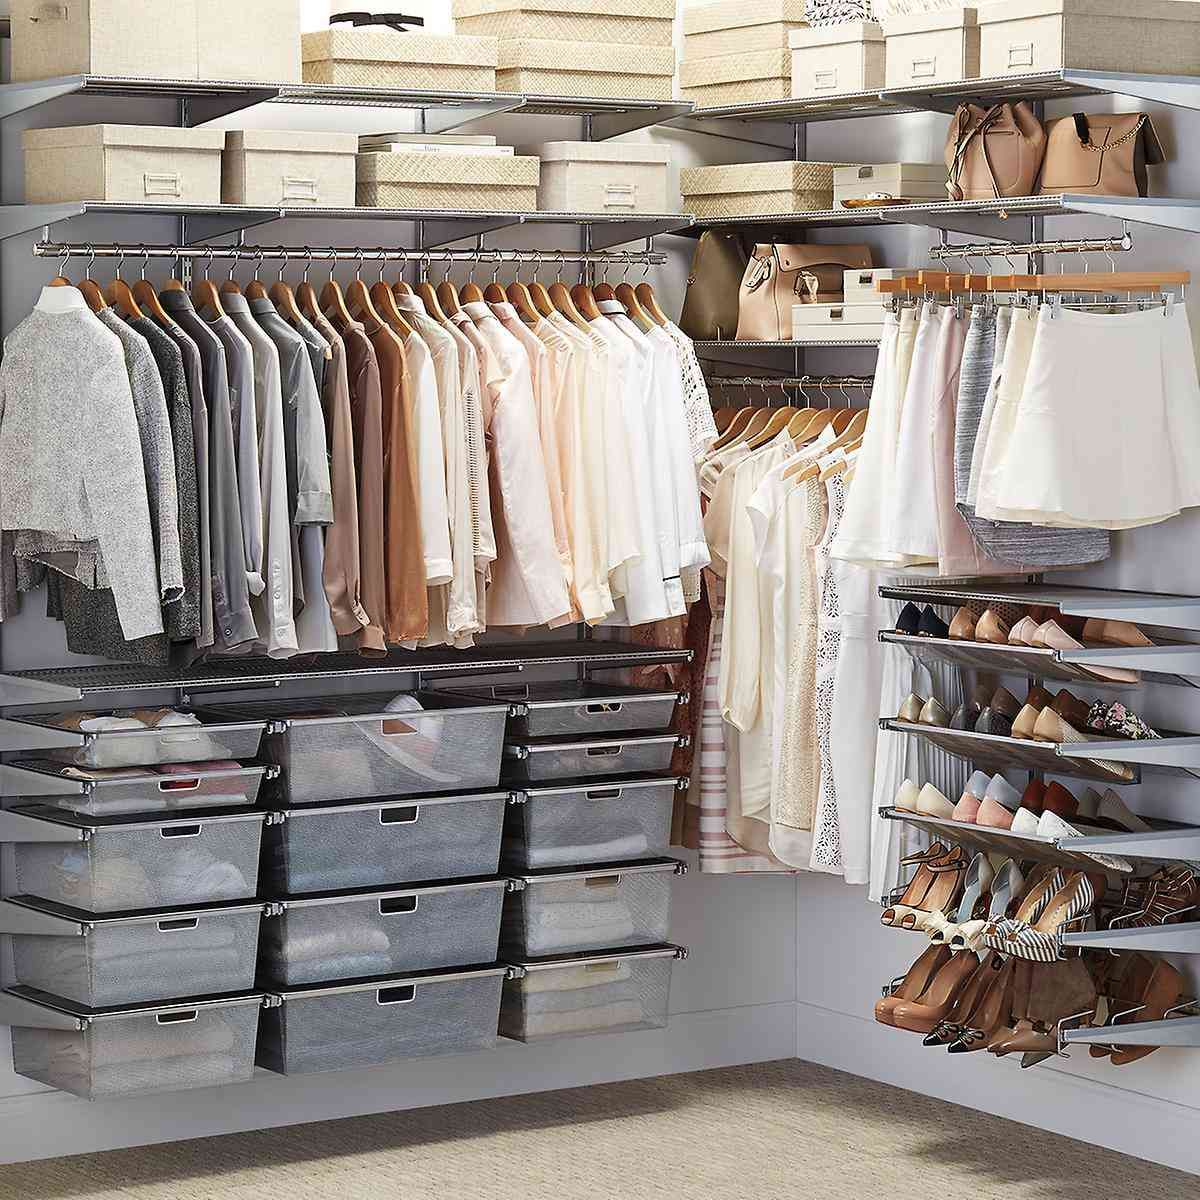 The 9 Best Closet Systems Of 2020 In 2020 Best Closet Systems